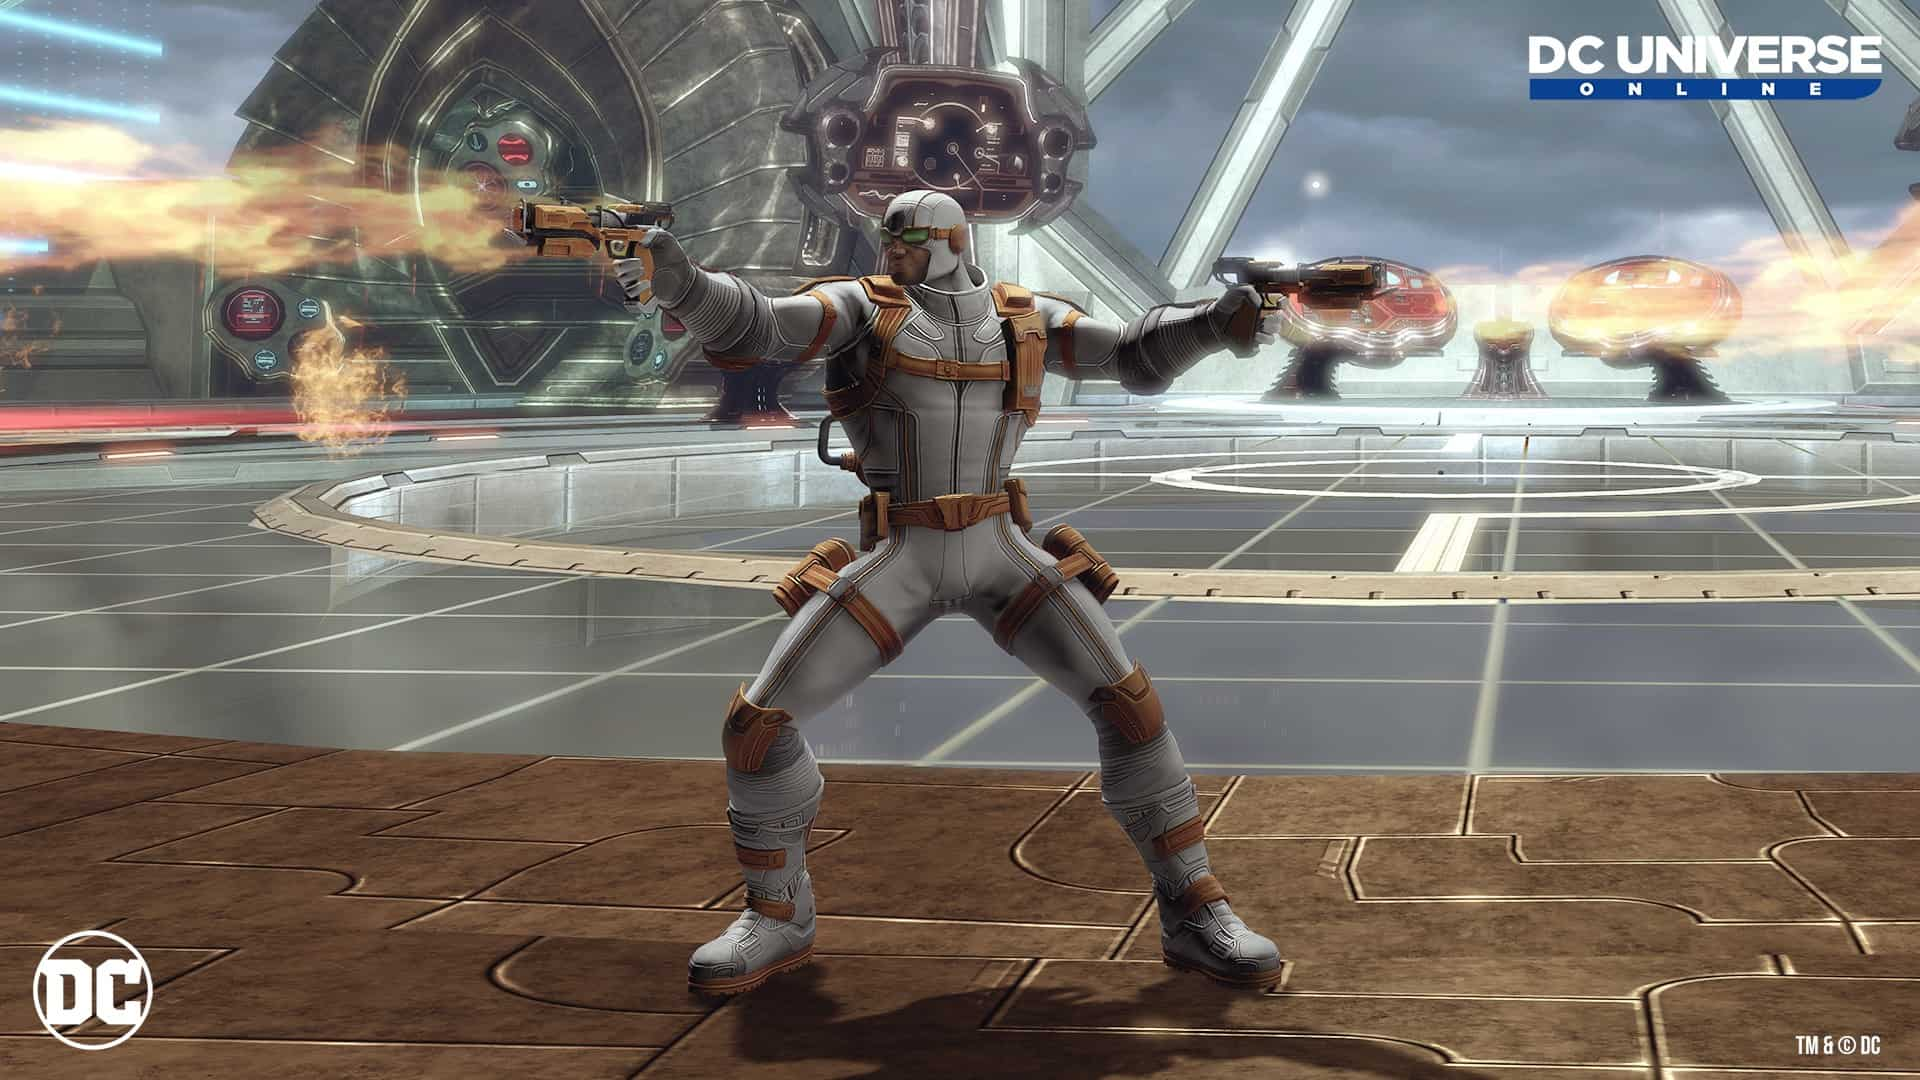 World Of Flashpoint Will Be Free For All DCUO Players